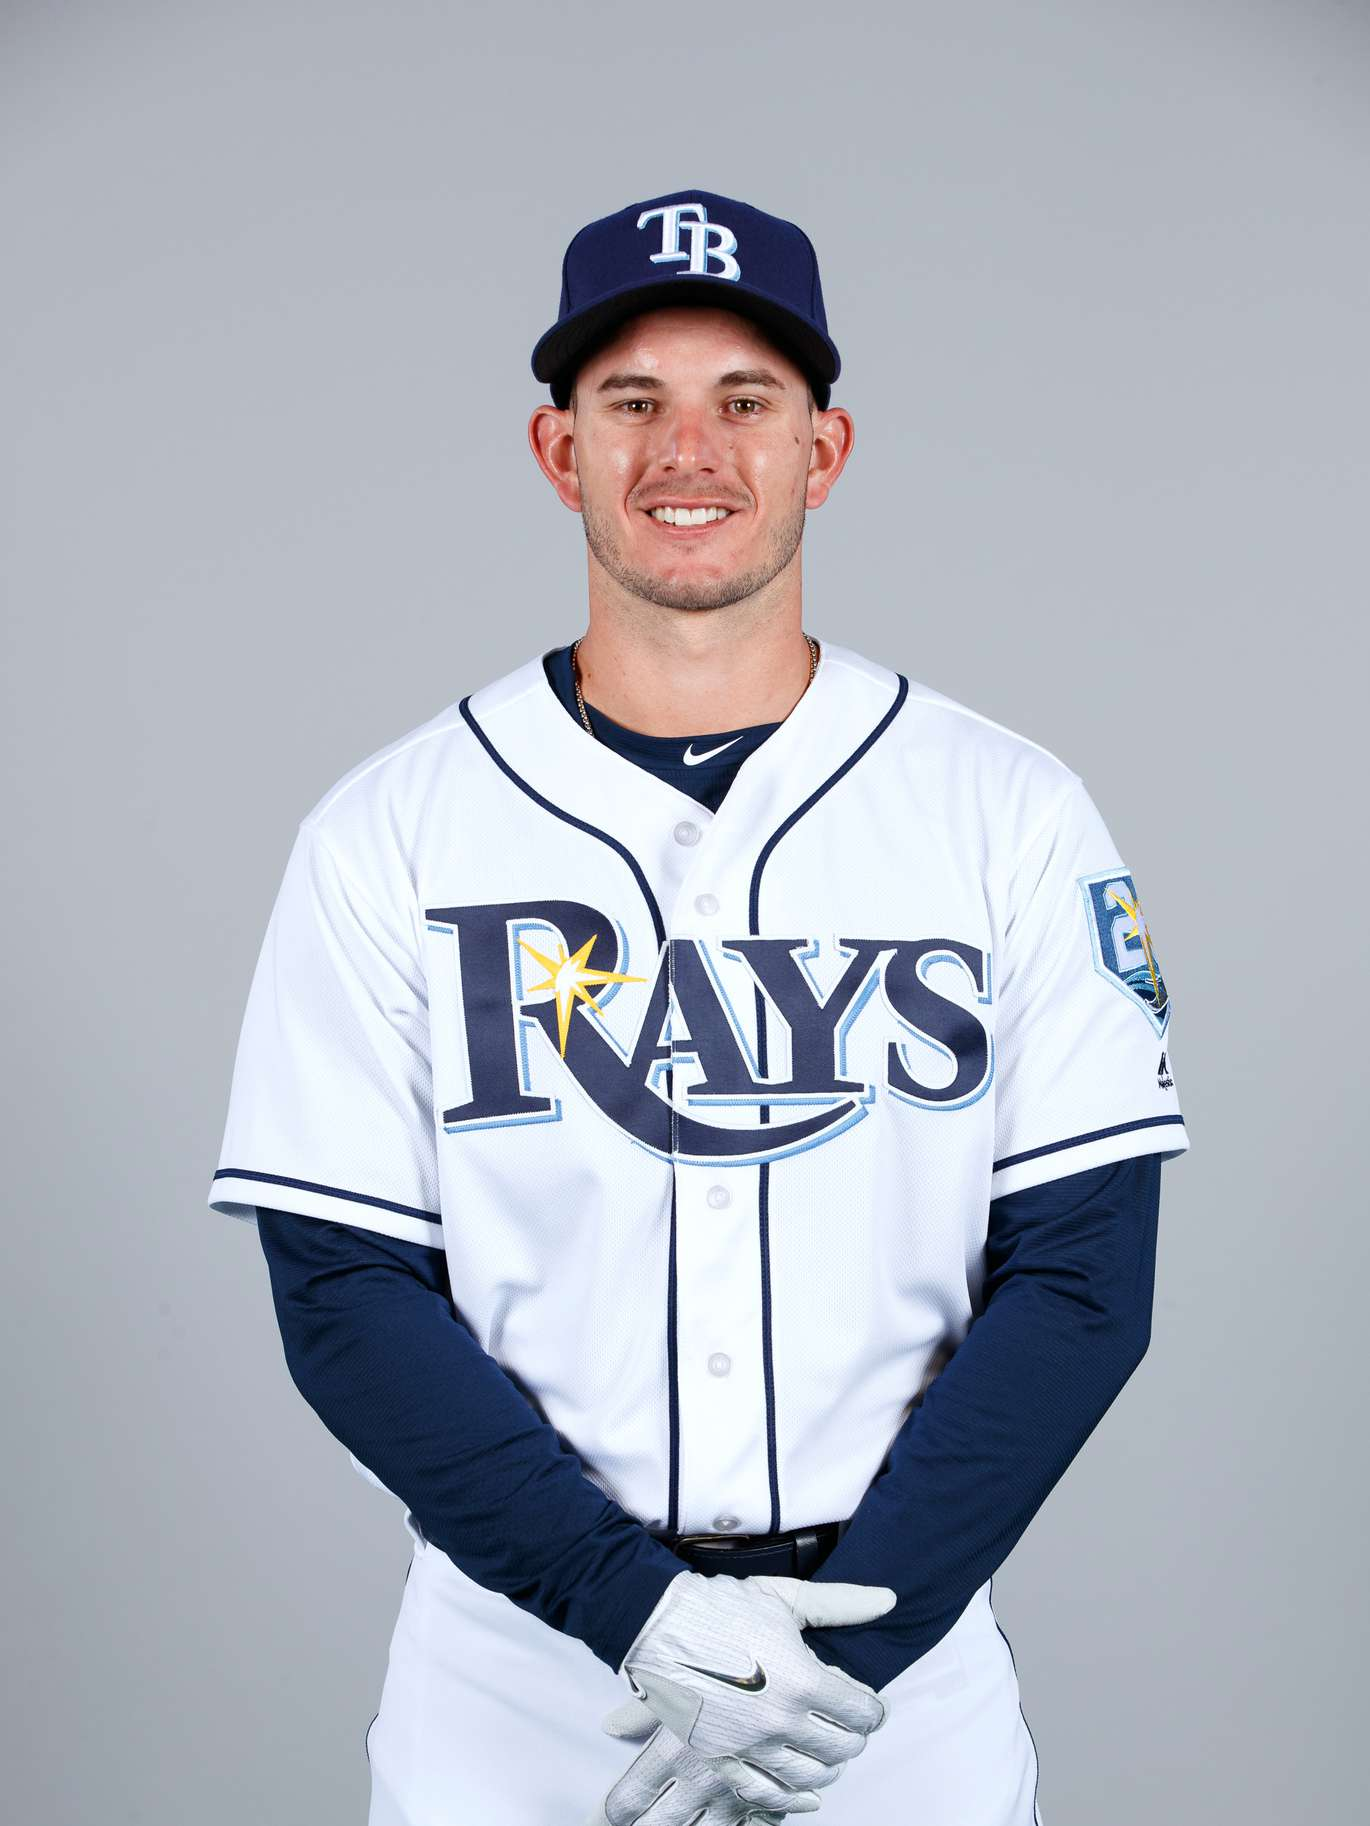 17. Daniel Robertson, inf, No. 28: Will start less at second than lefty-swinging Wendle, but will get time spelling Duffy and Hechavarria, and bat can earn him more.